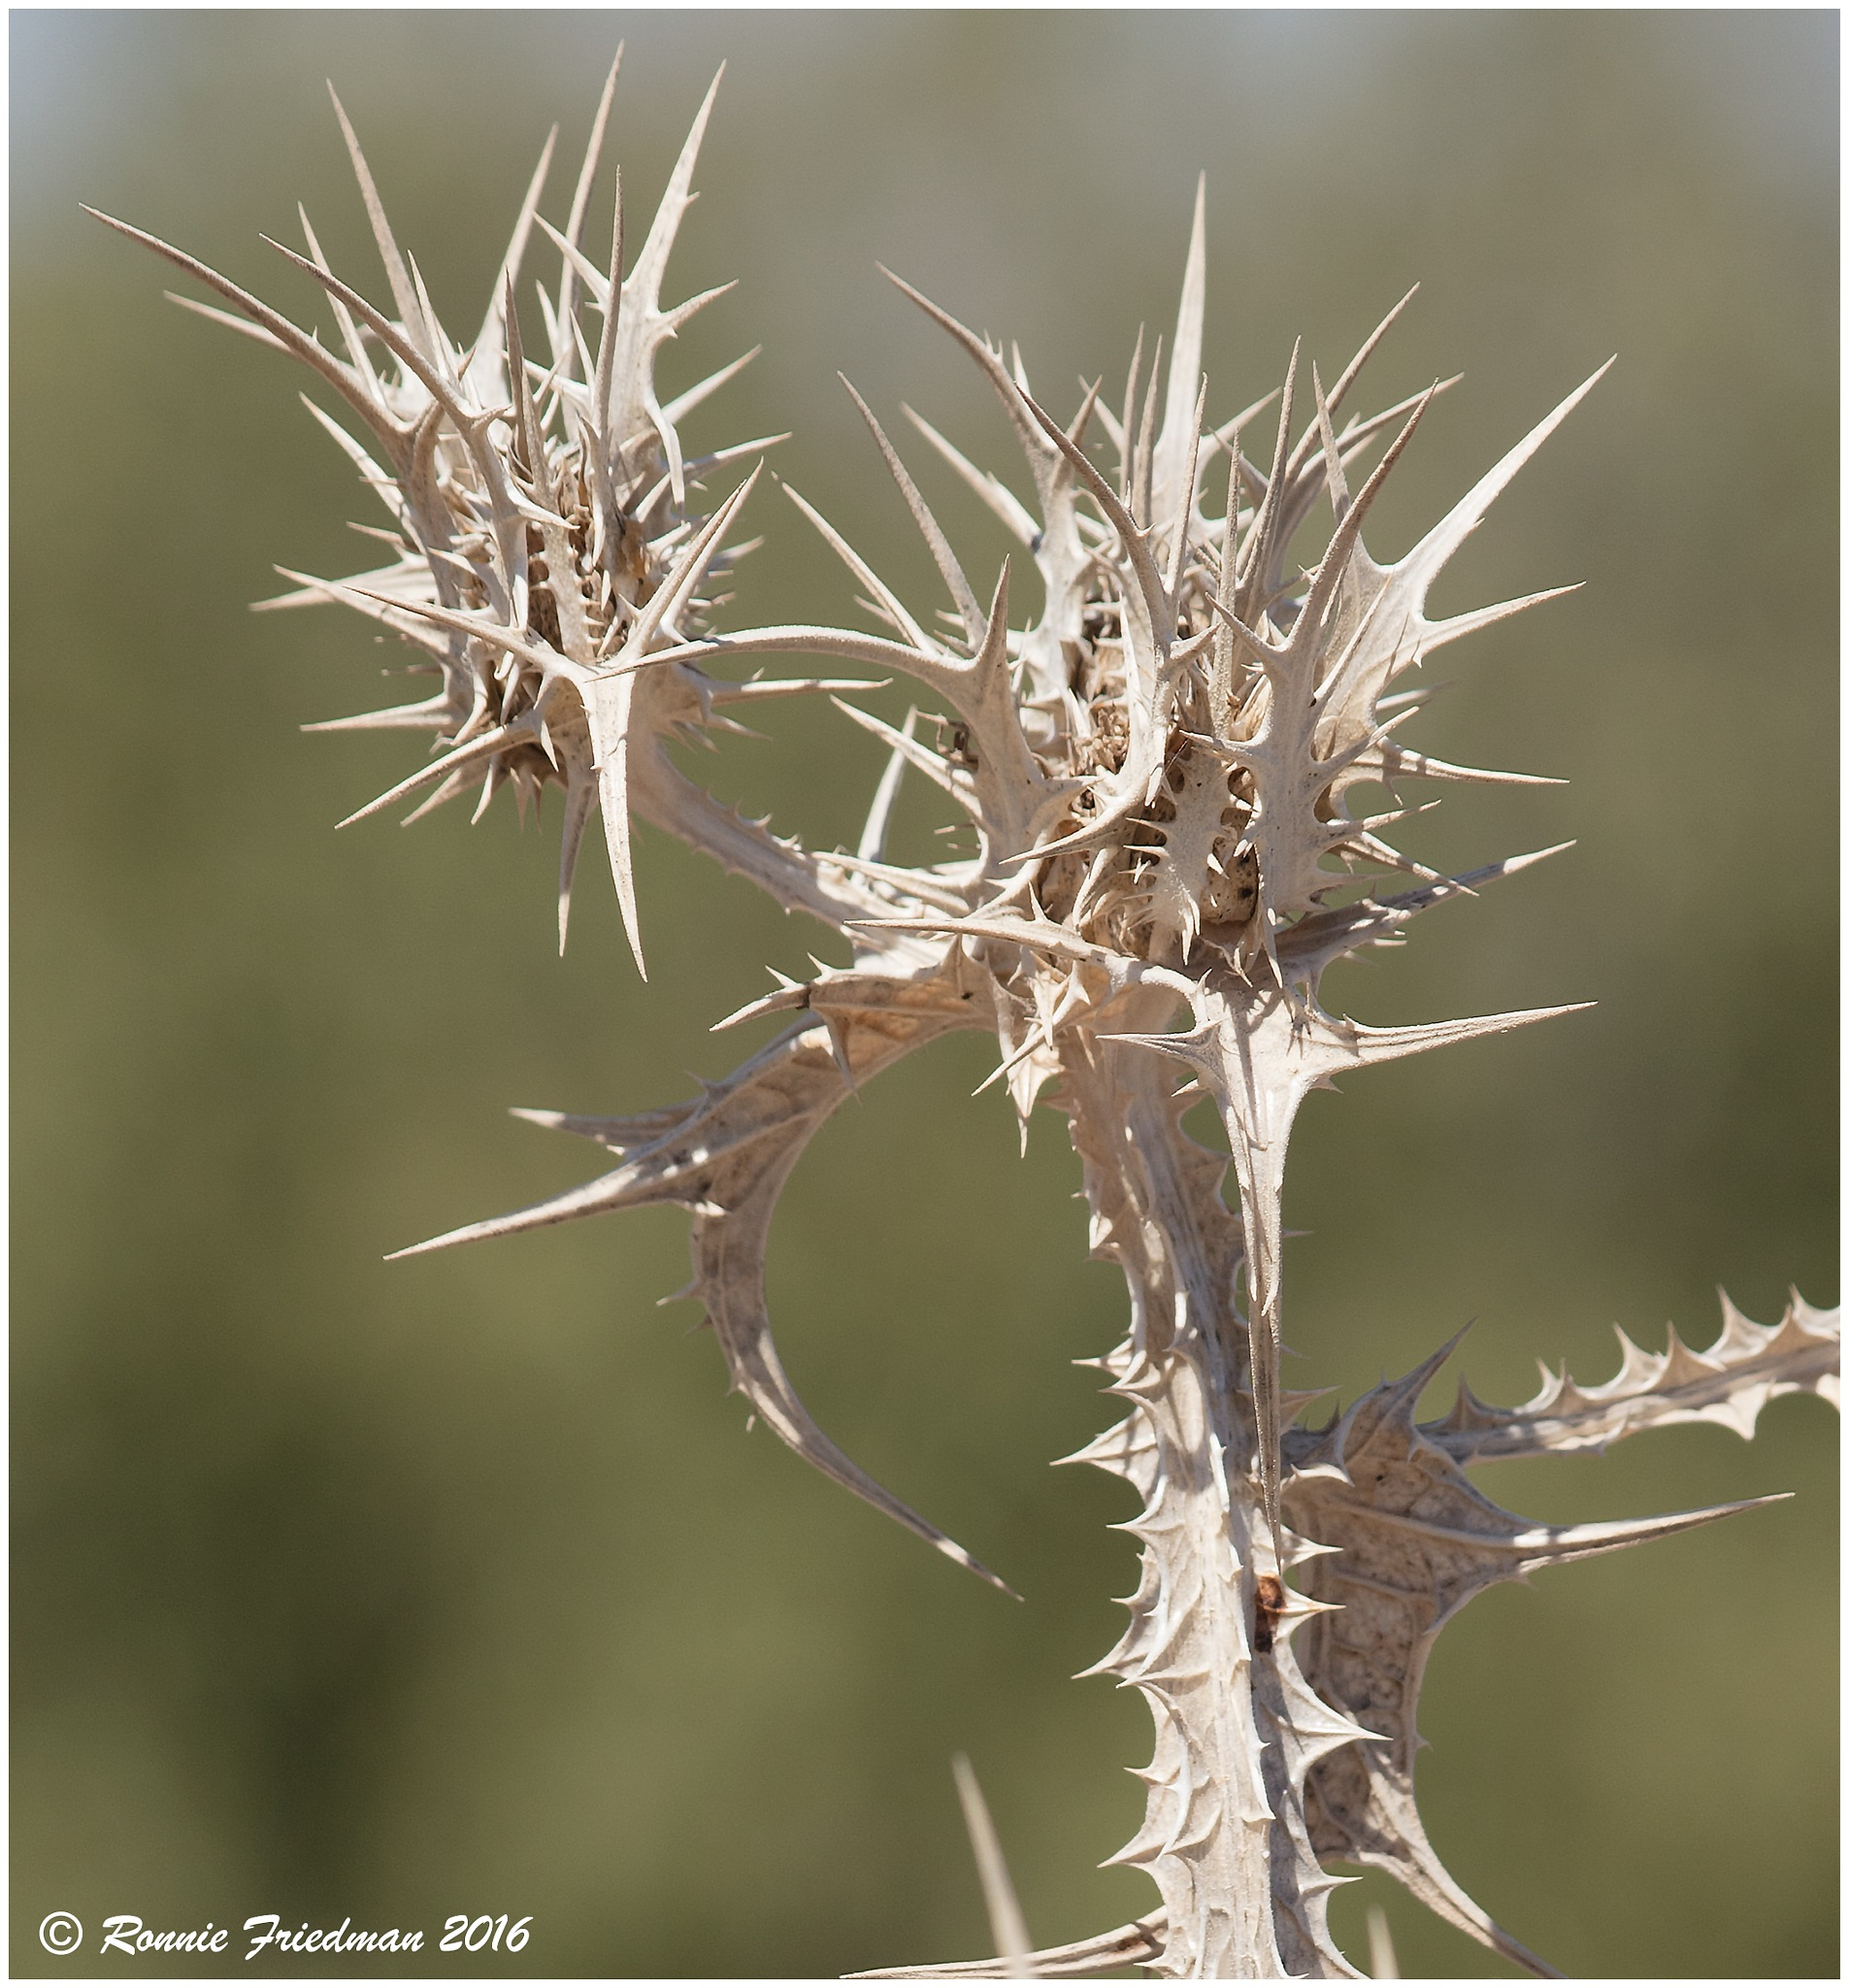 More thistle skeletons. by Ronnie Friedman